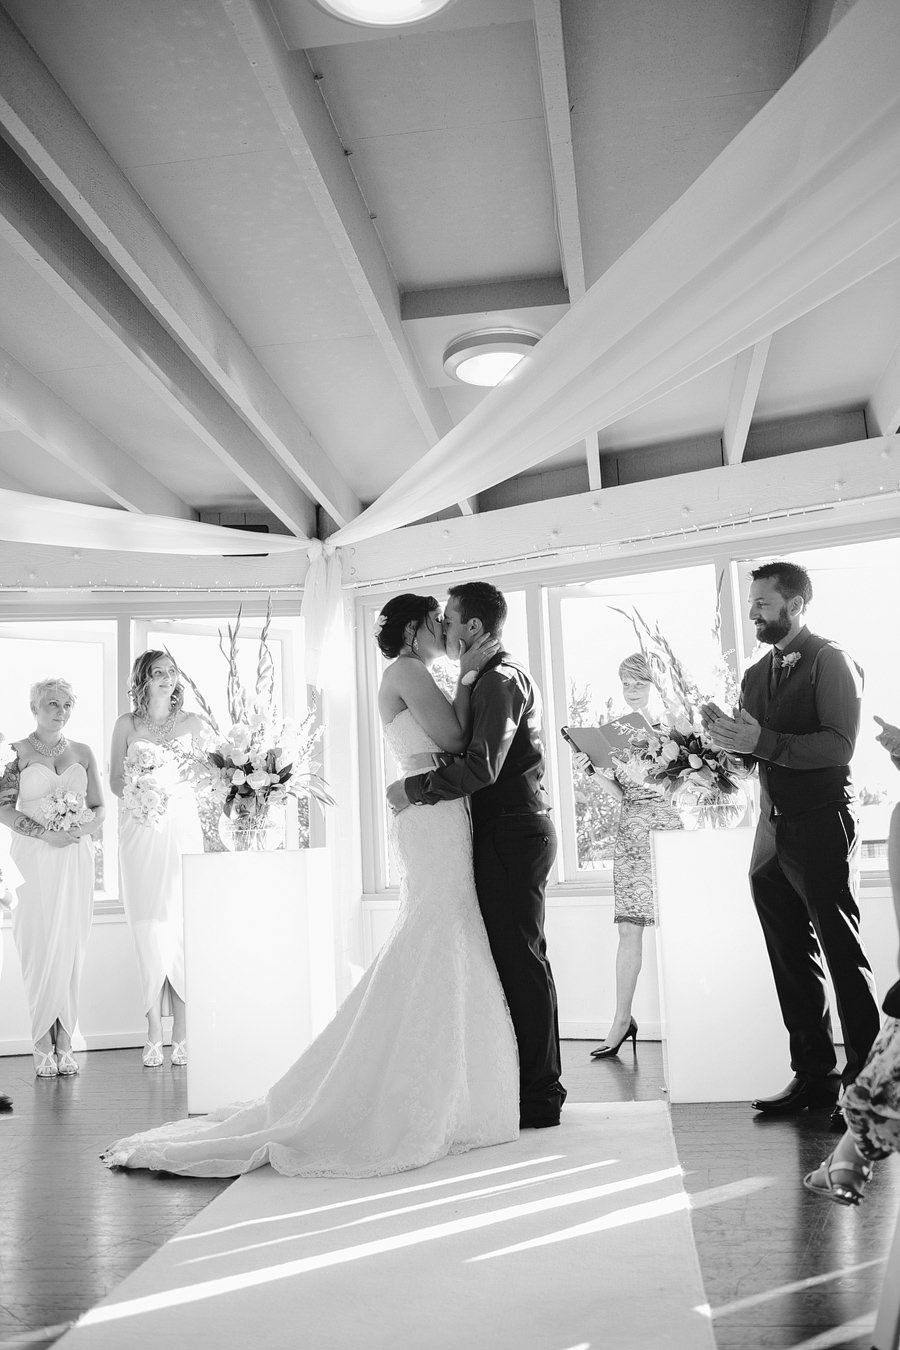 Sydney Wedding Photography: Ceremony